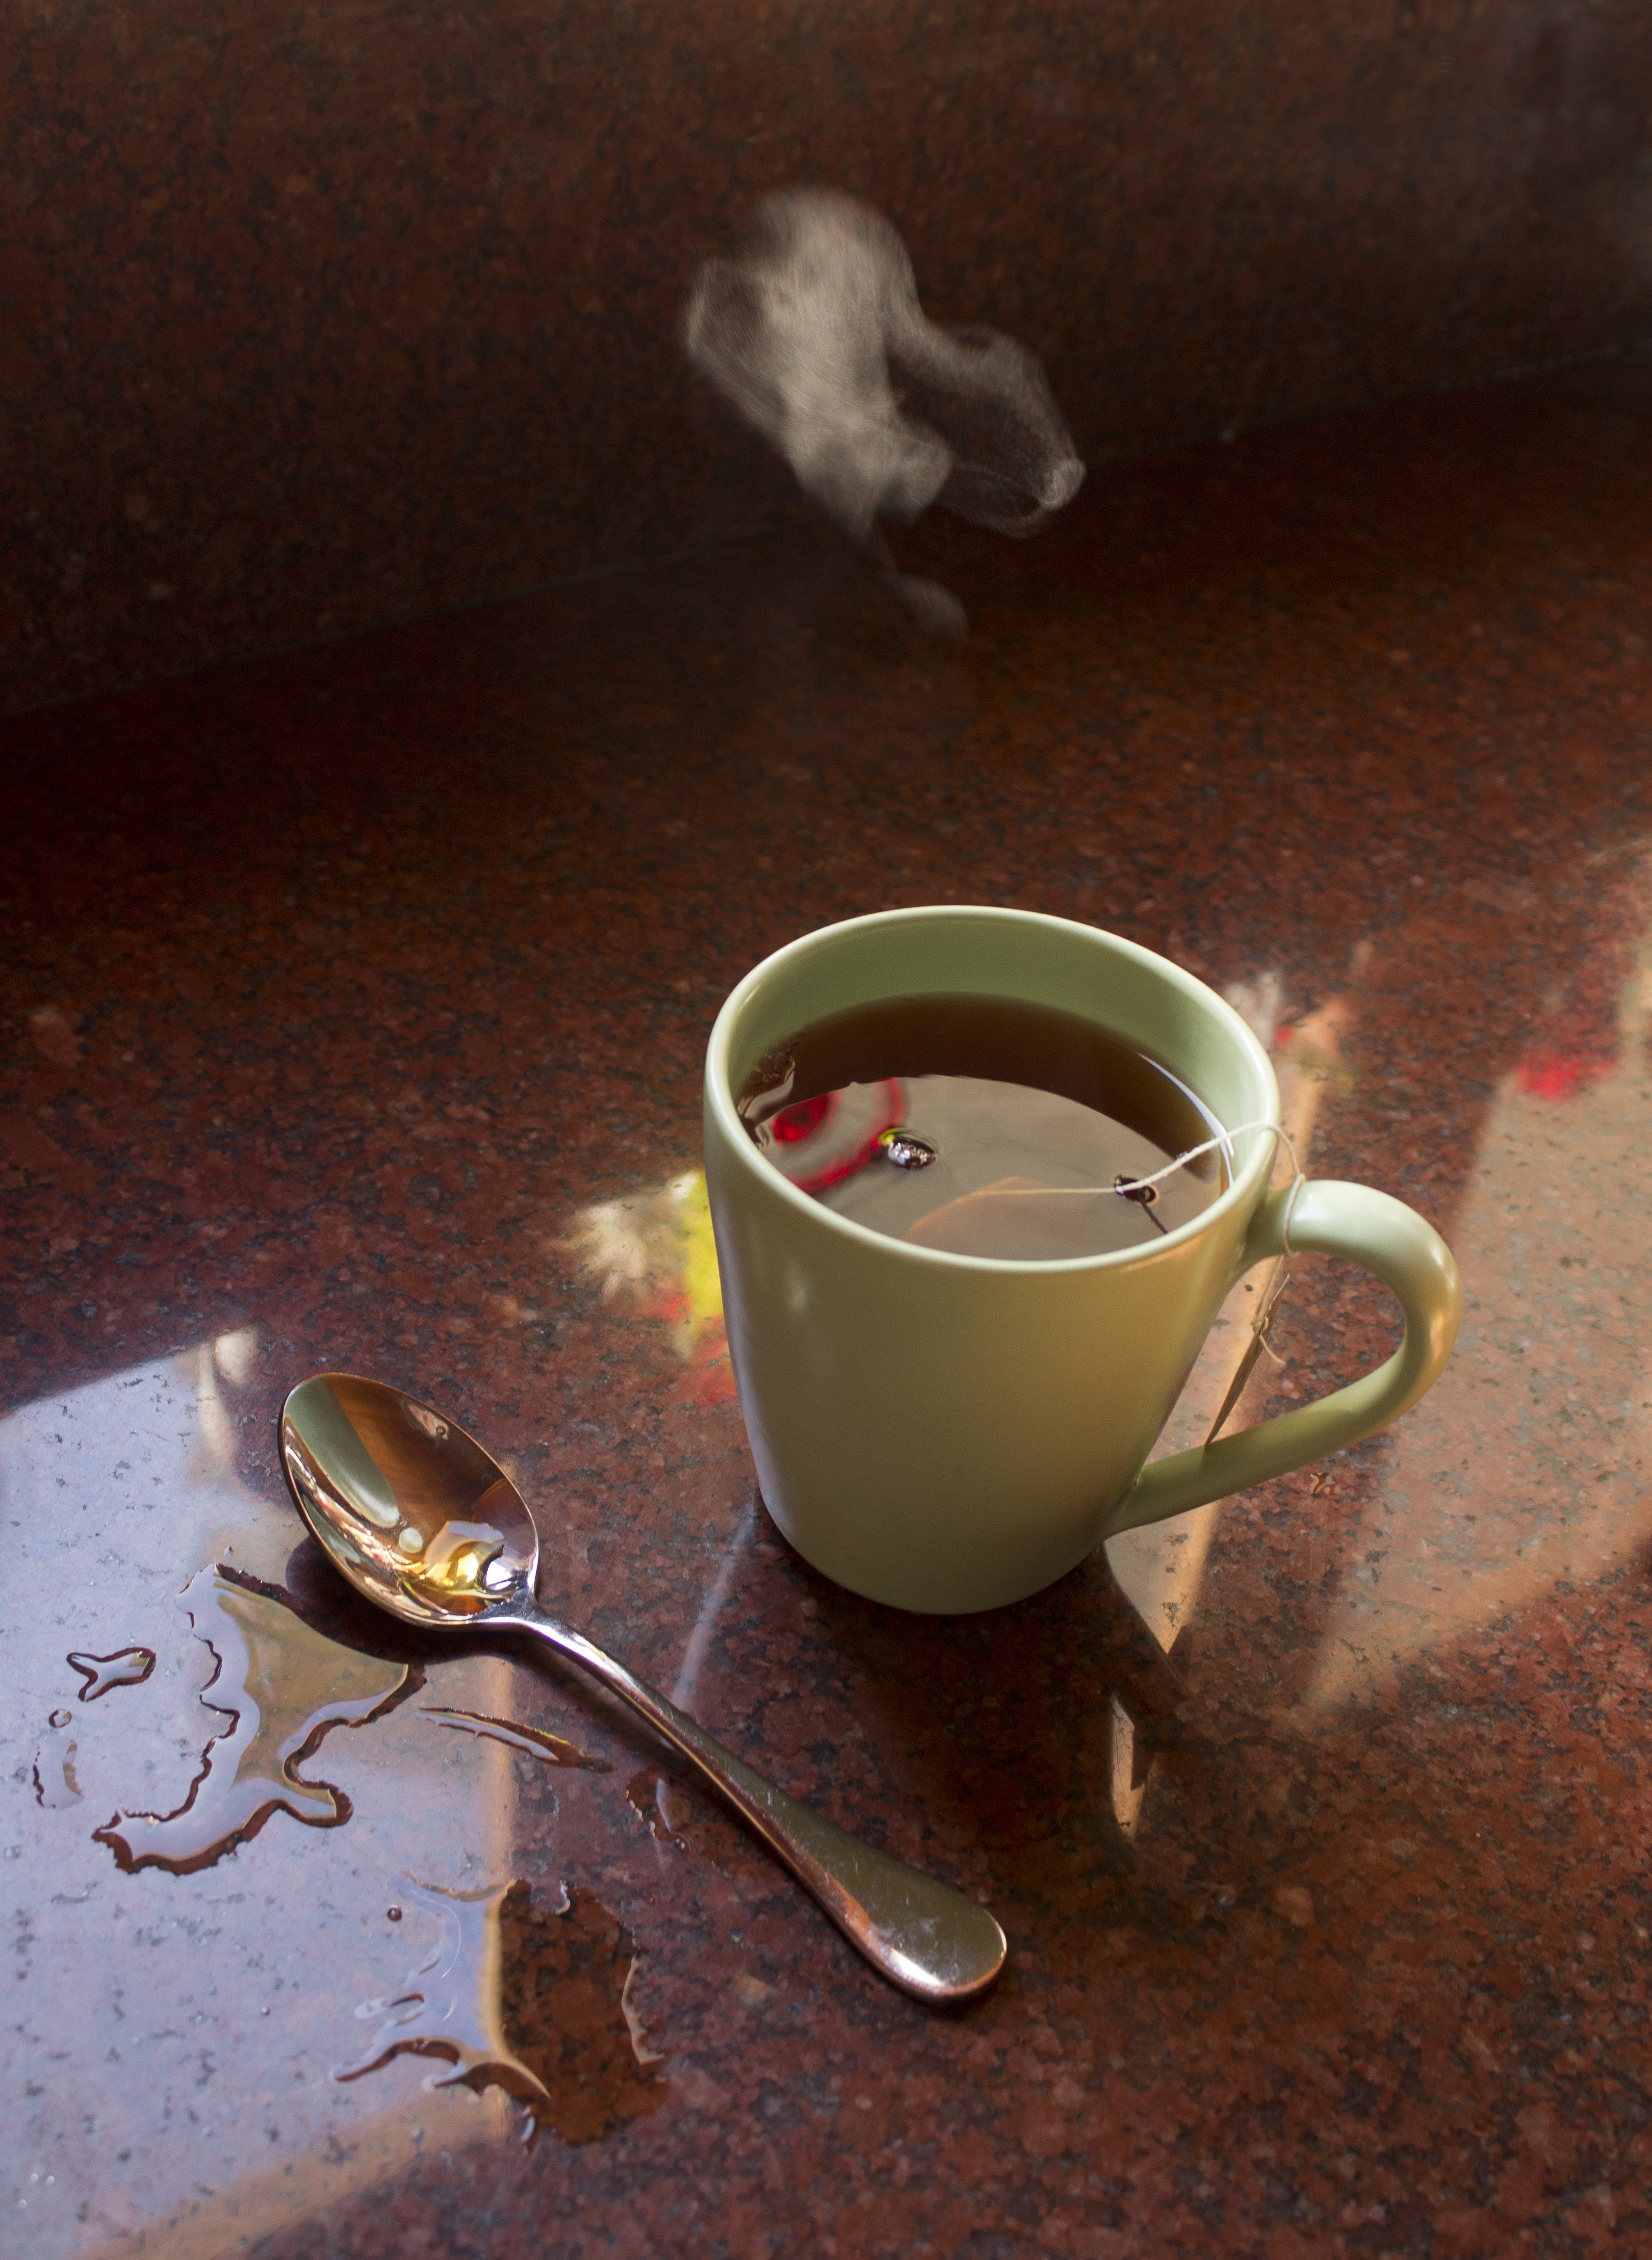 Image of steam rising from a cup of tea.